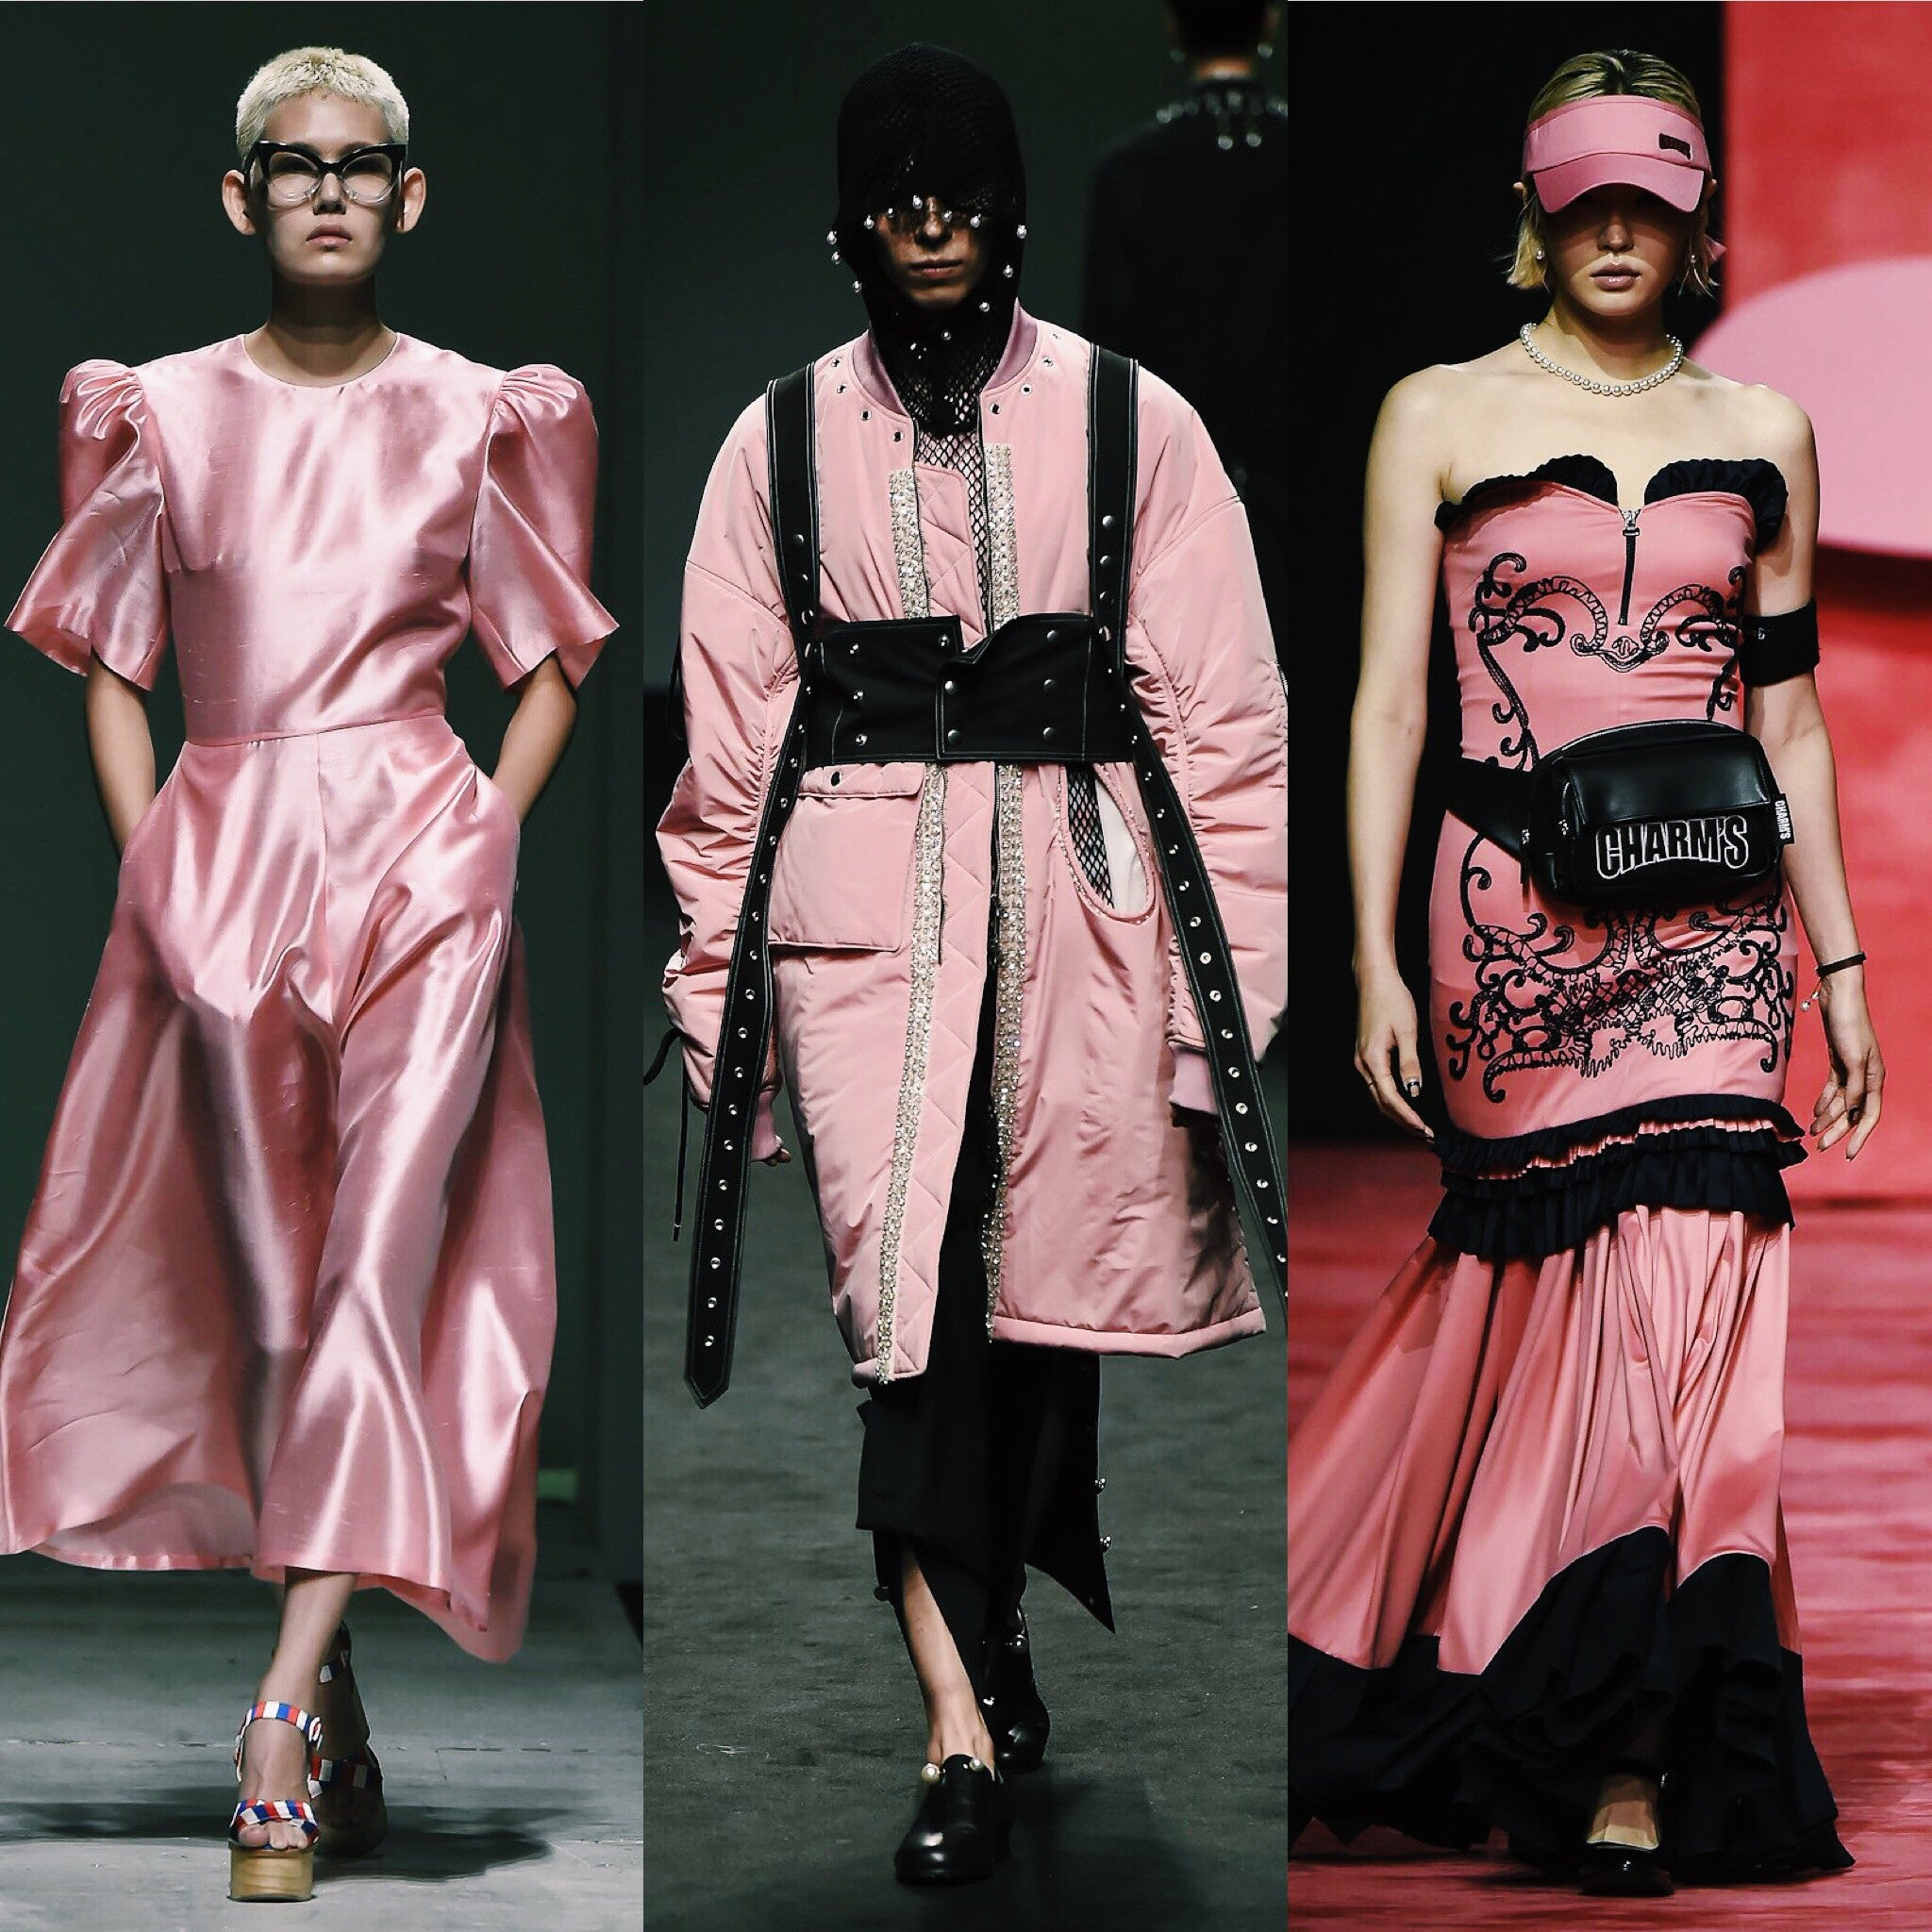 The Pink Fever in Seoul Fashion Week